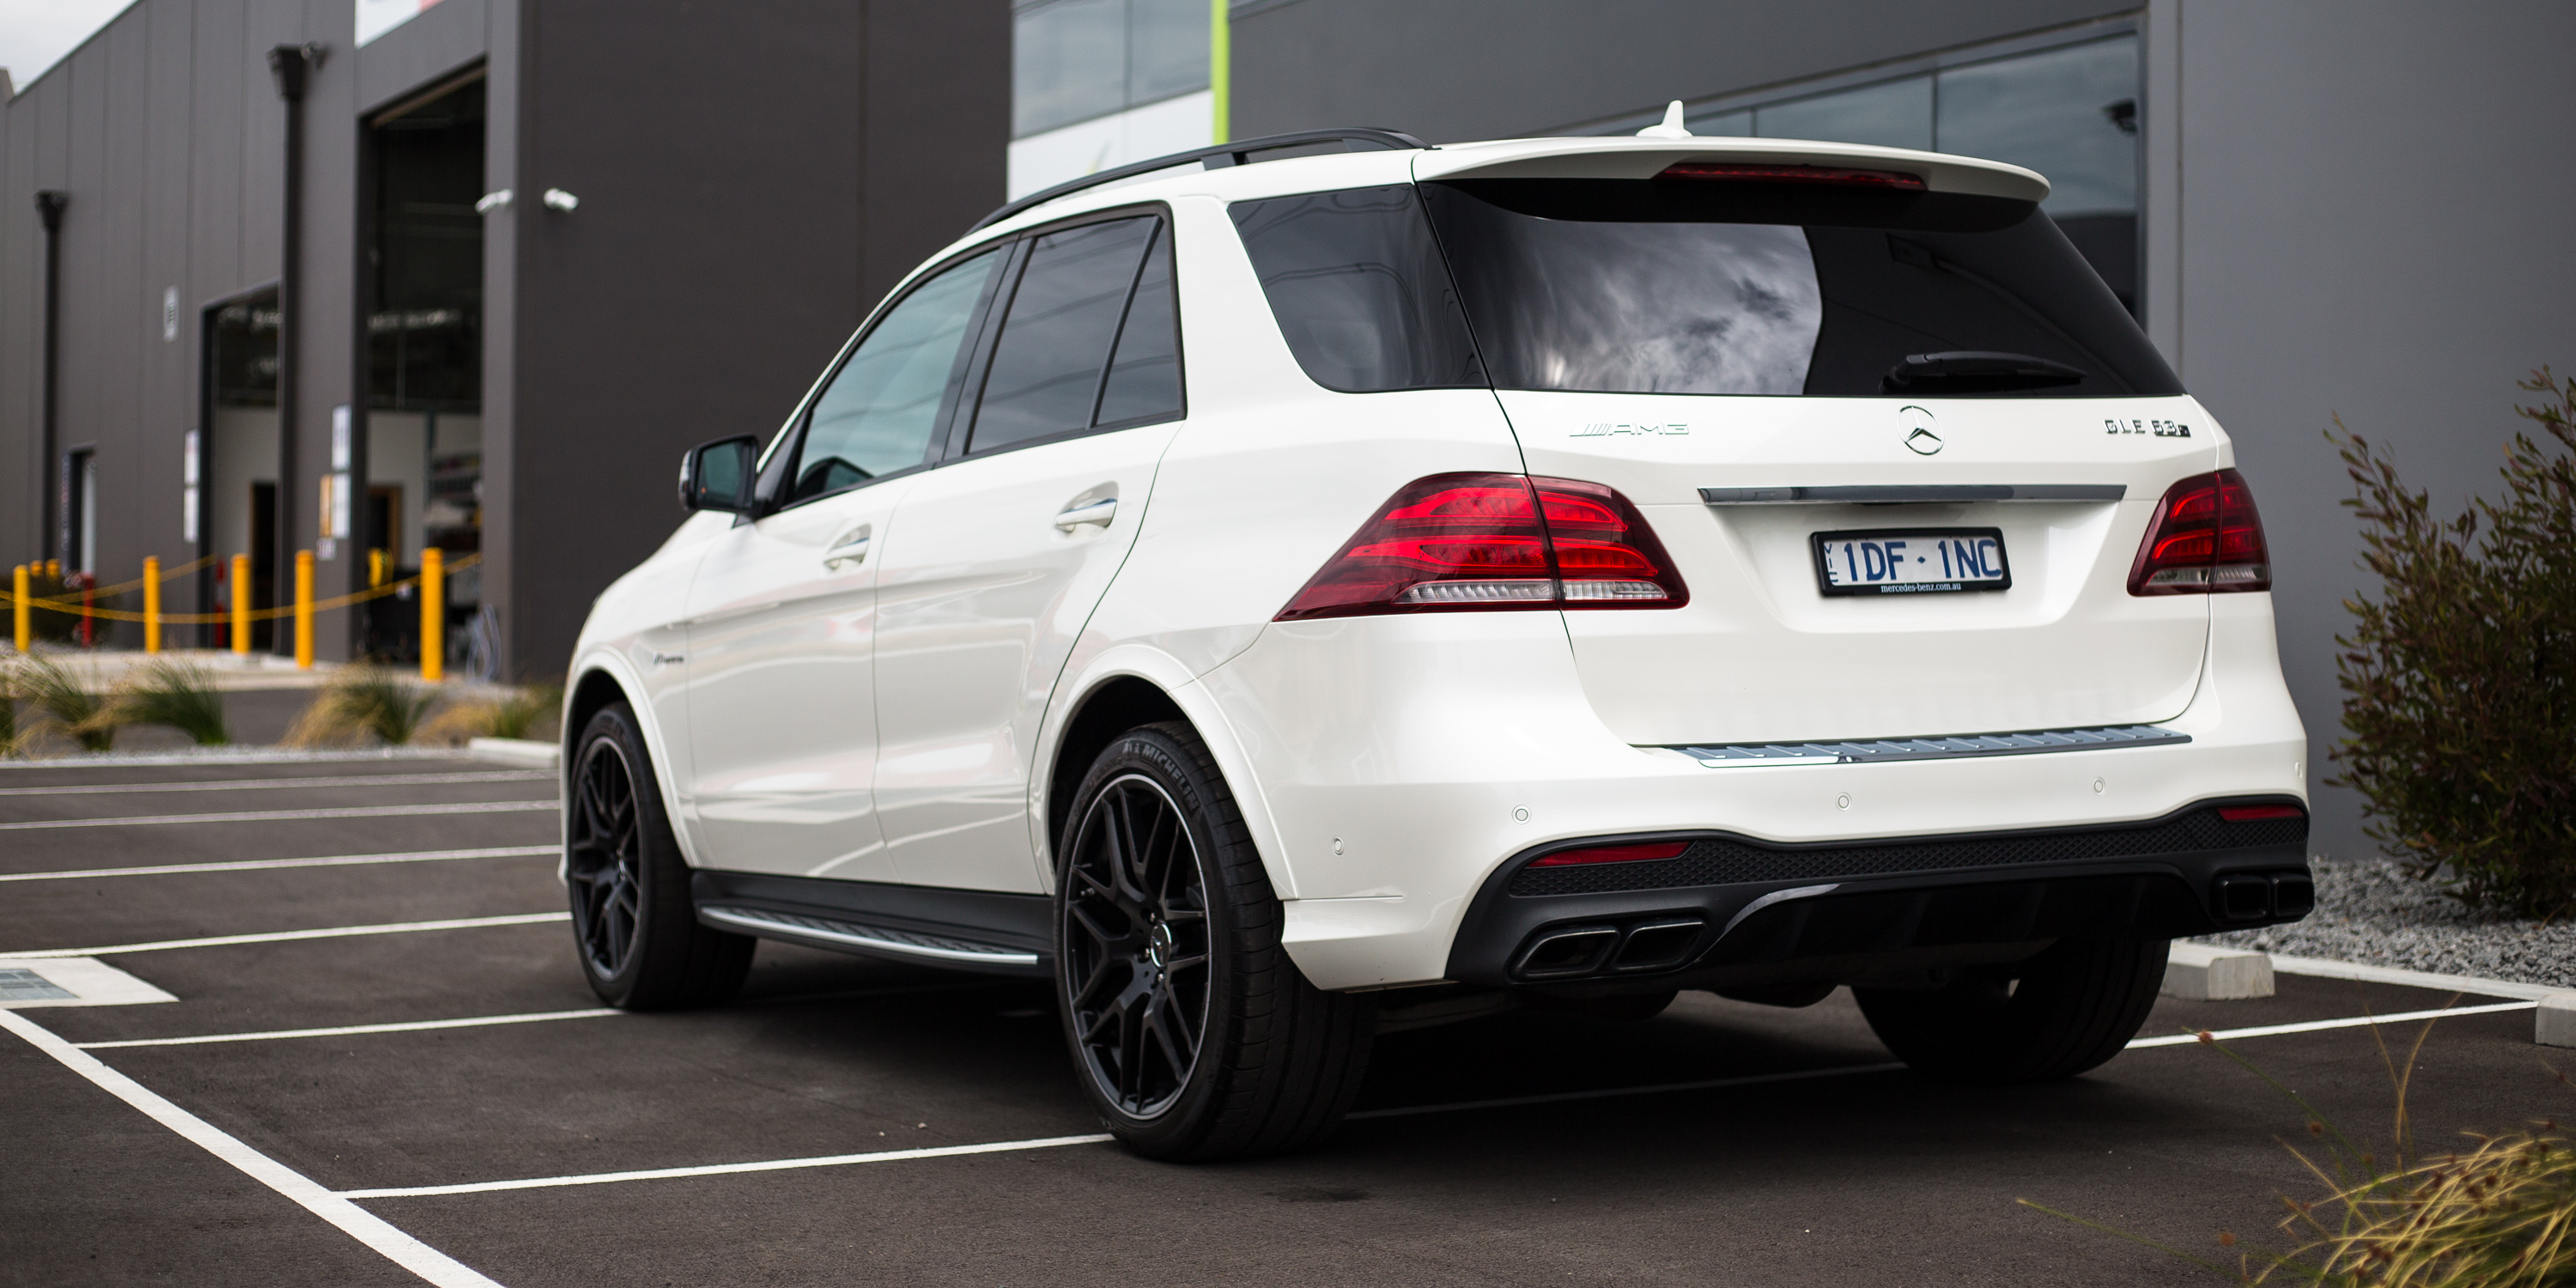 2016 mercedes amg gle63 s review caradvice for Amg mercedes benz suv